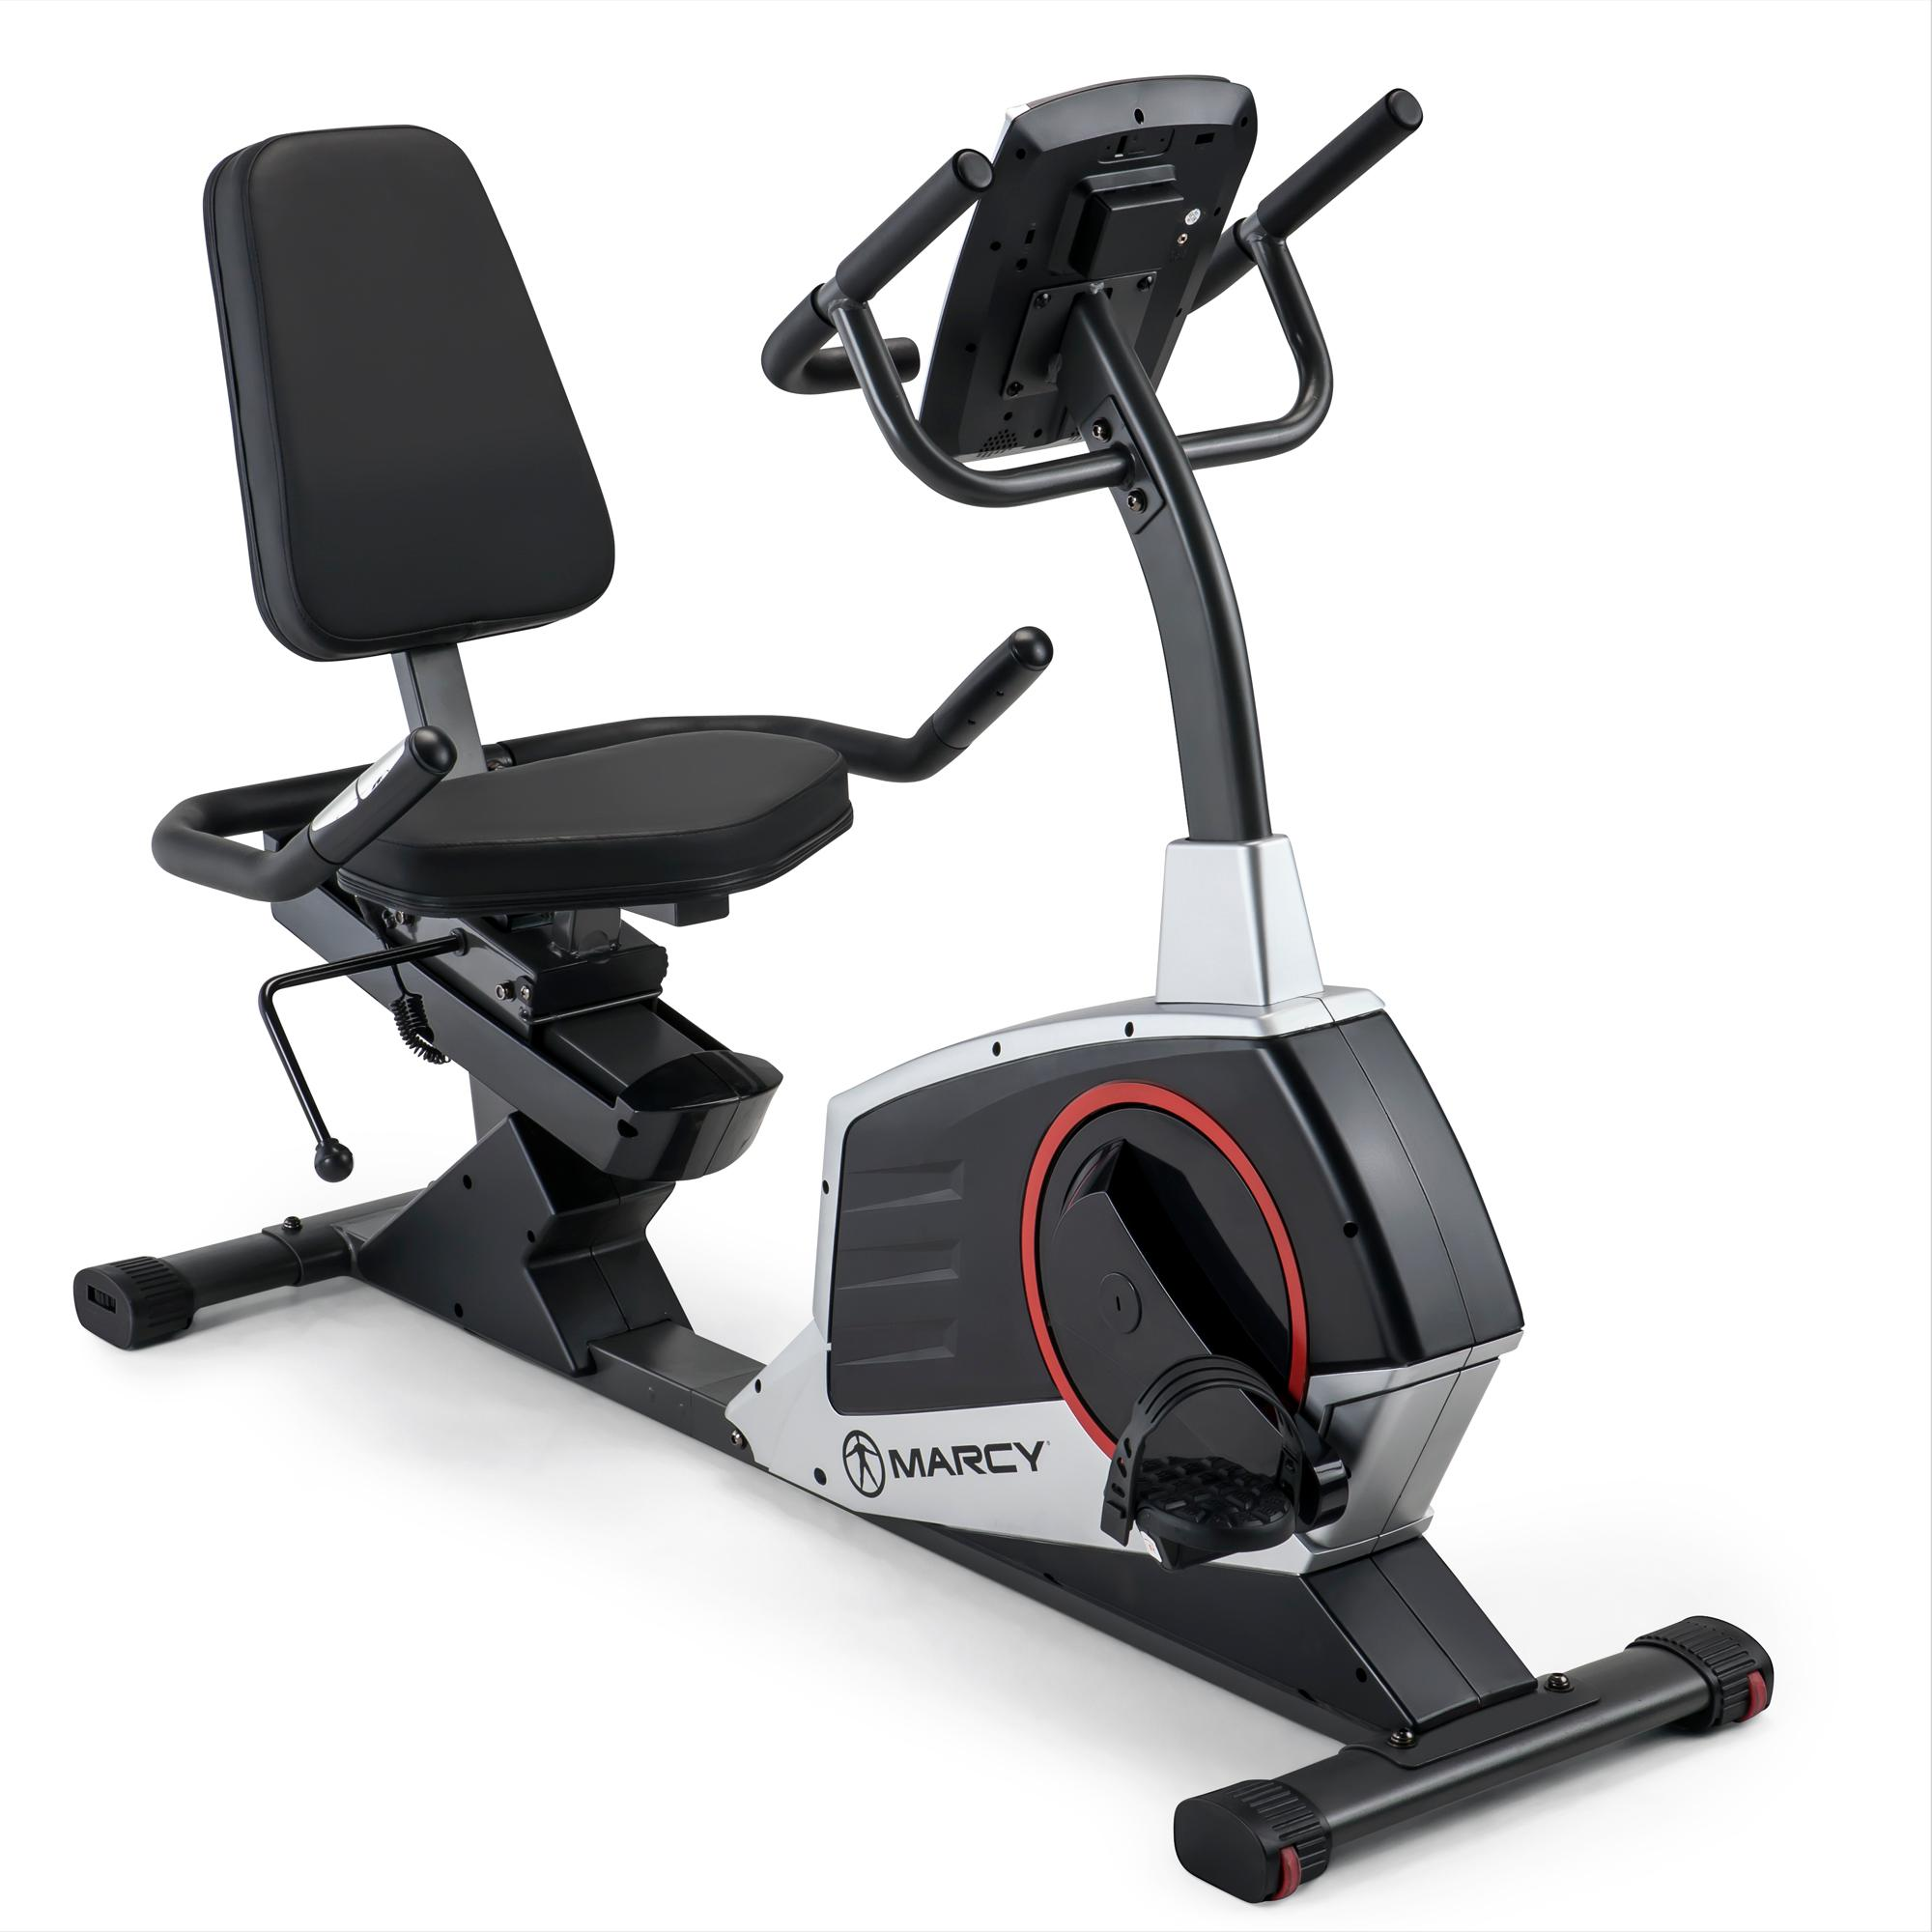 Marcy Recumbent Exercise Bike Ns 716r: Amazon.com : Marcy Regenerating Recumbent Exercise Bike